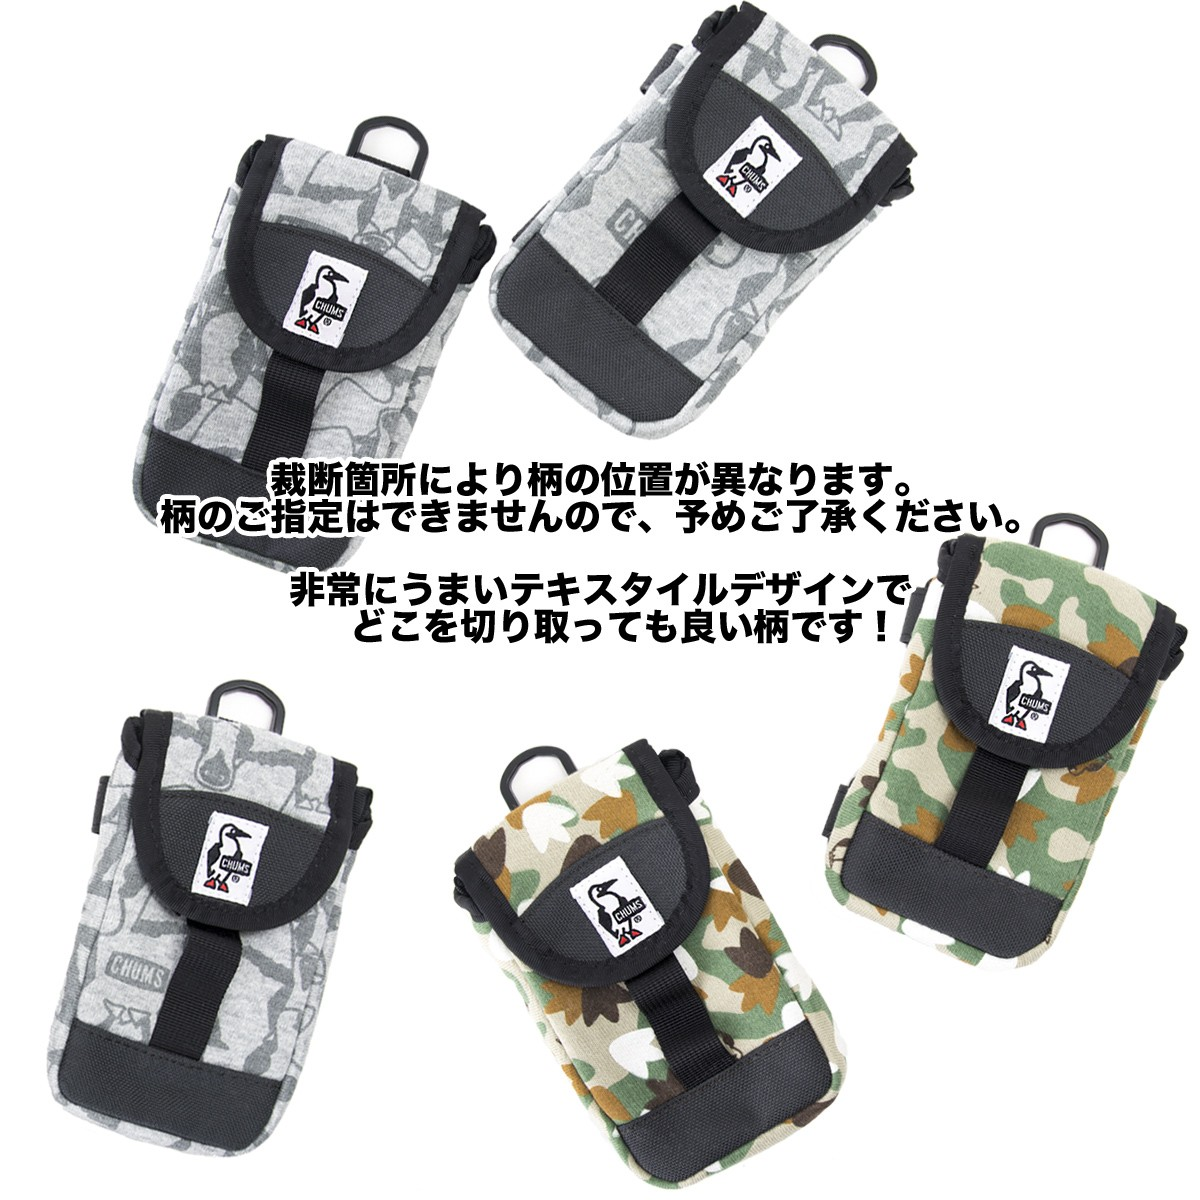 CHUMS Mobile Patched Case モバイル パッチド ケース